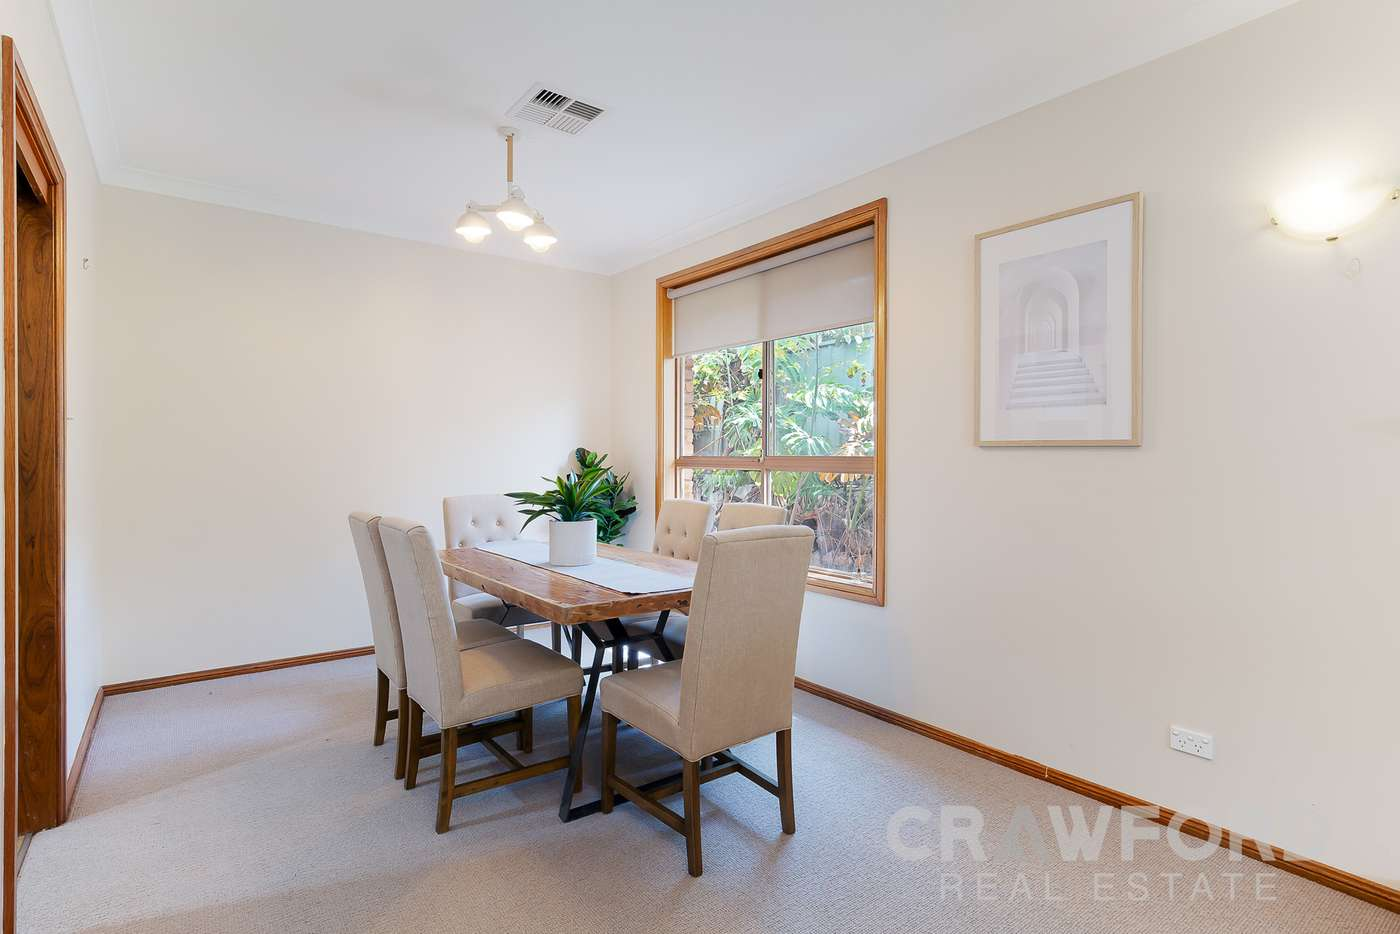 Fifth view of Homely house listing, 65 Birchgrove Drive, Wallsend NSW 2287